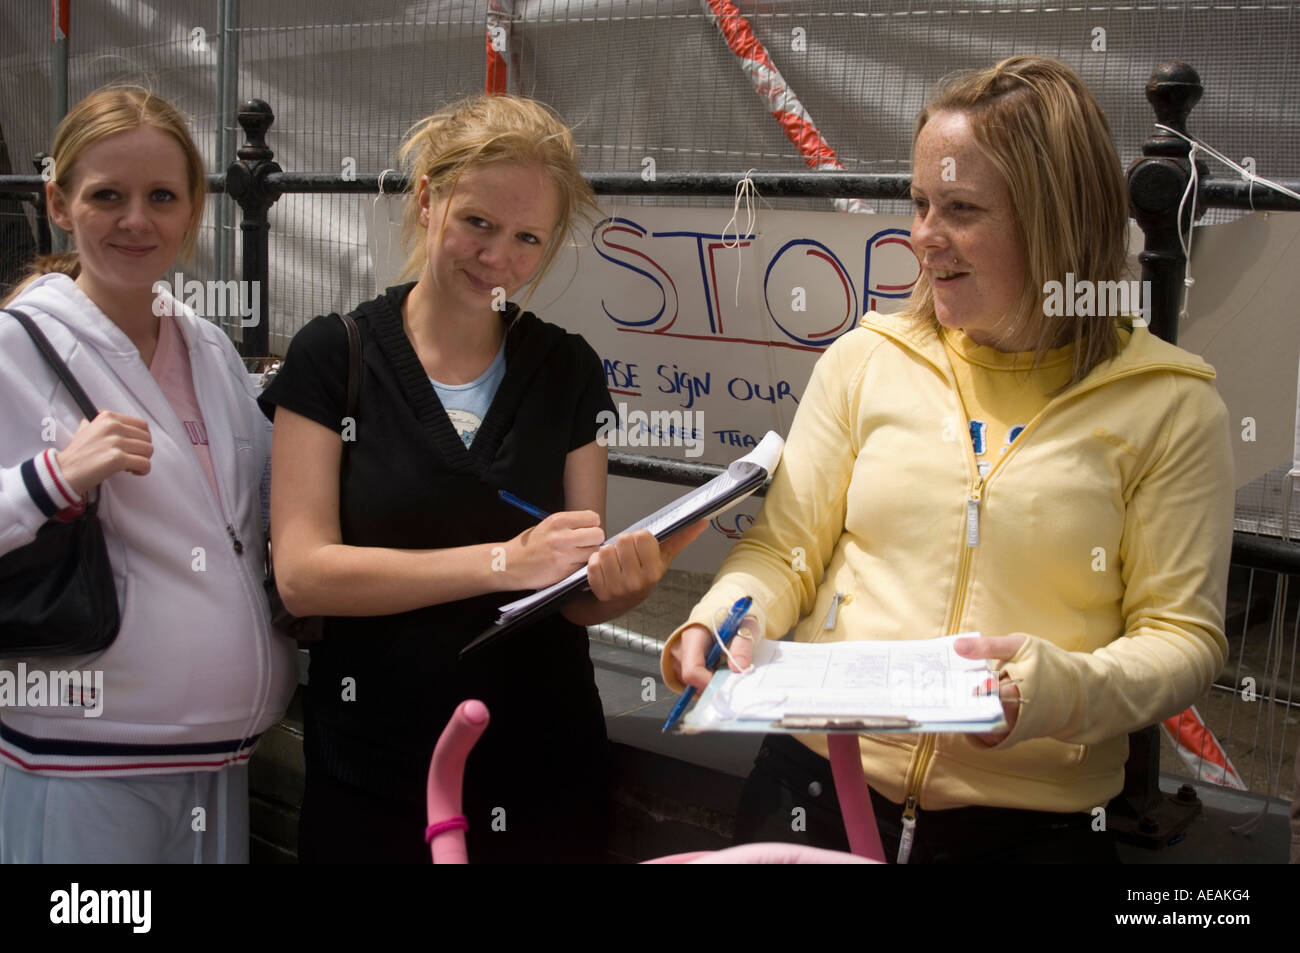 Three young mothers in Cardigan town collecting signatures for petition against giving housing priority to incomers, Wales UK - Stock Image